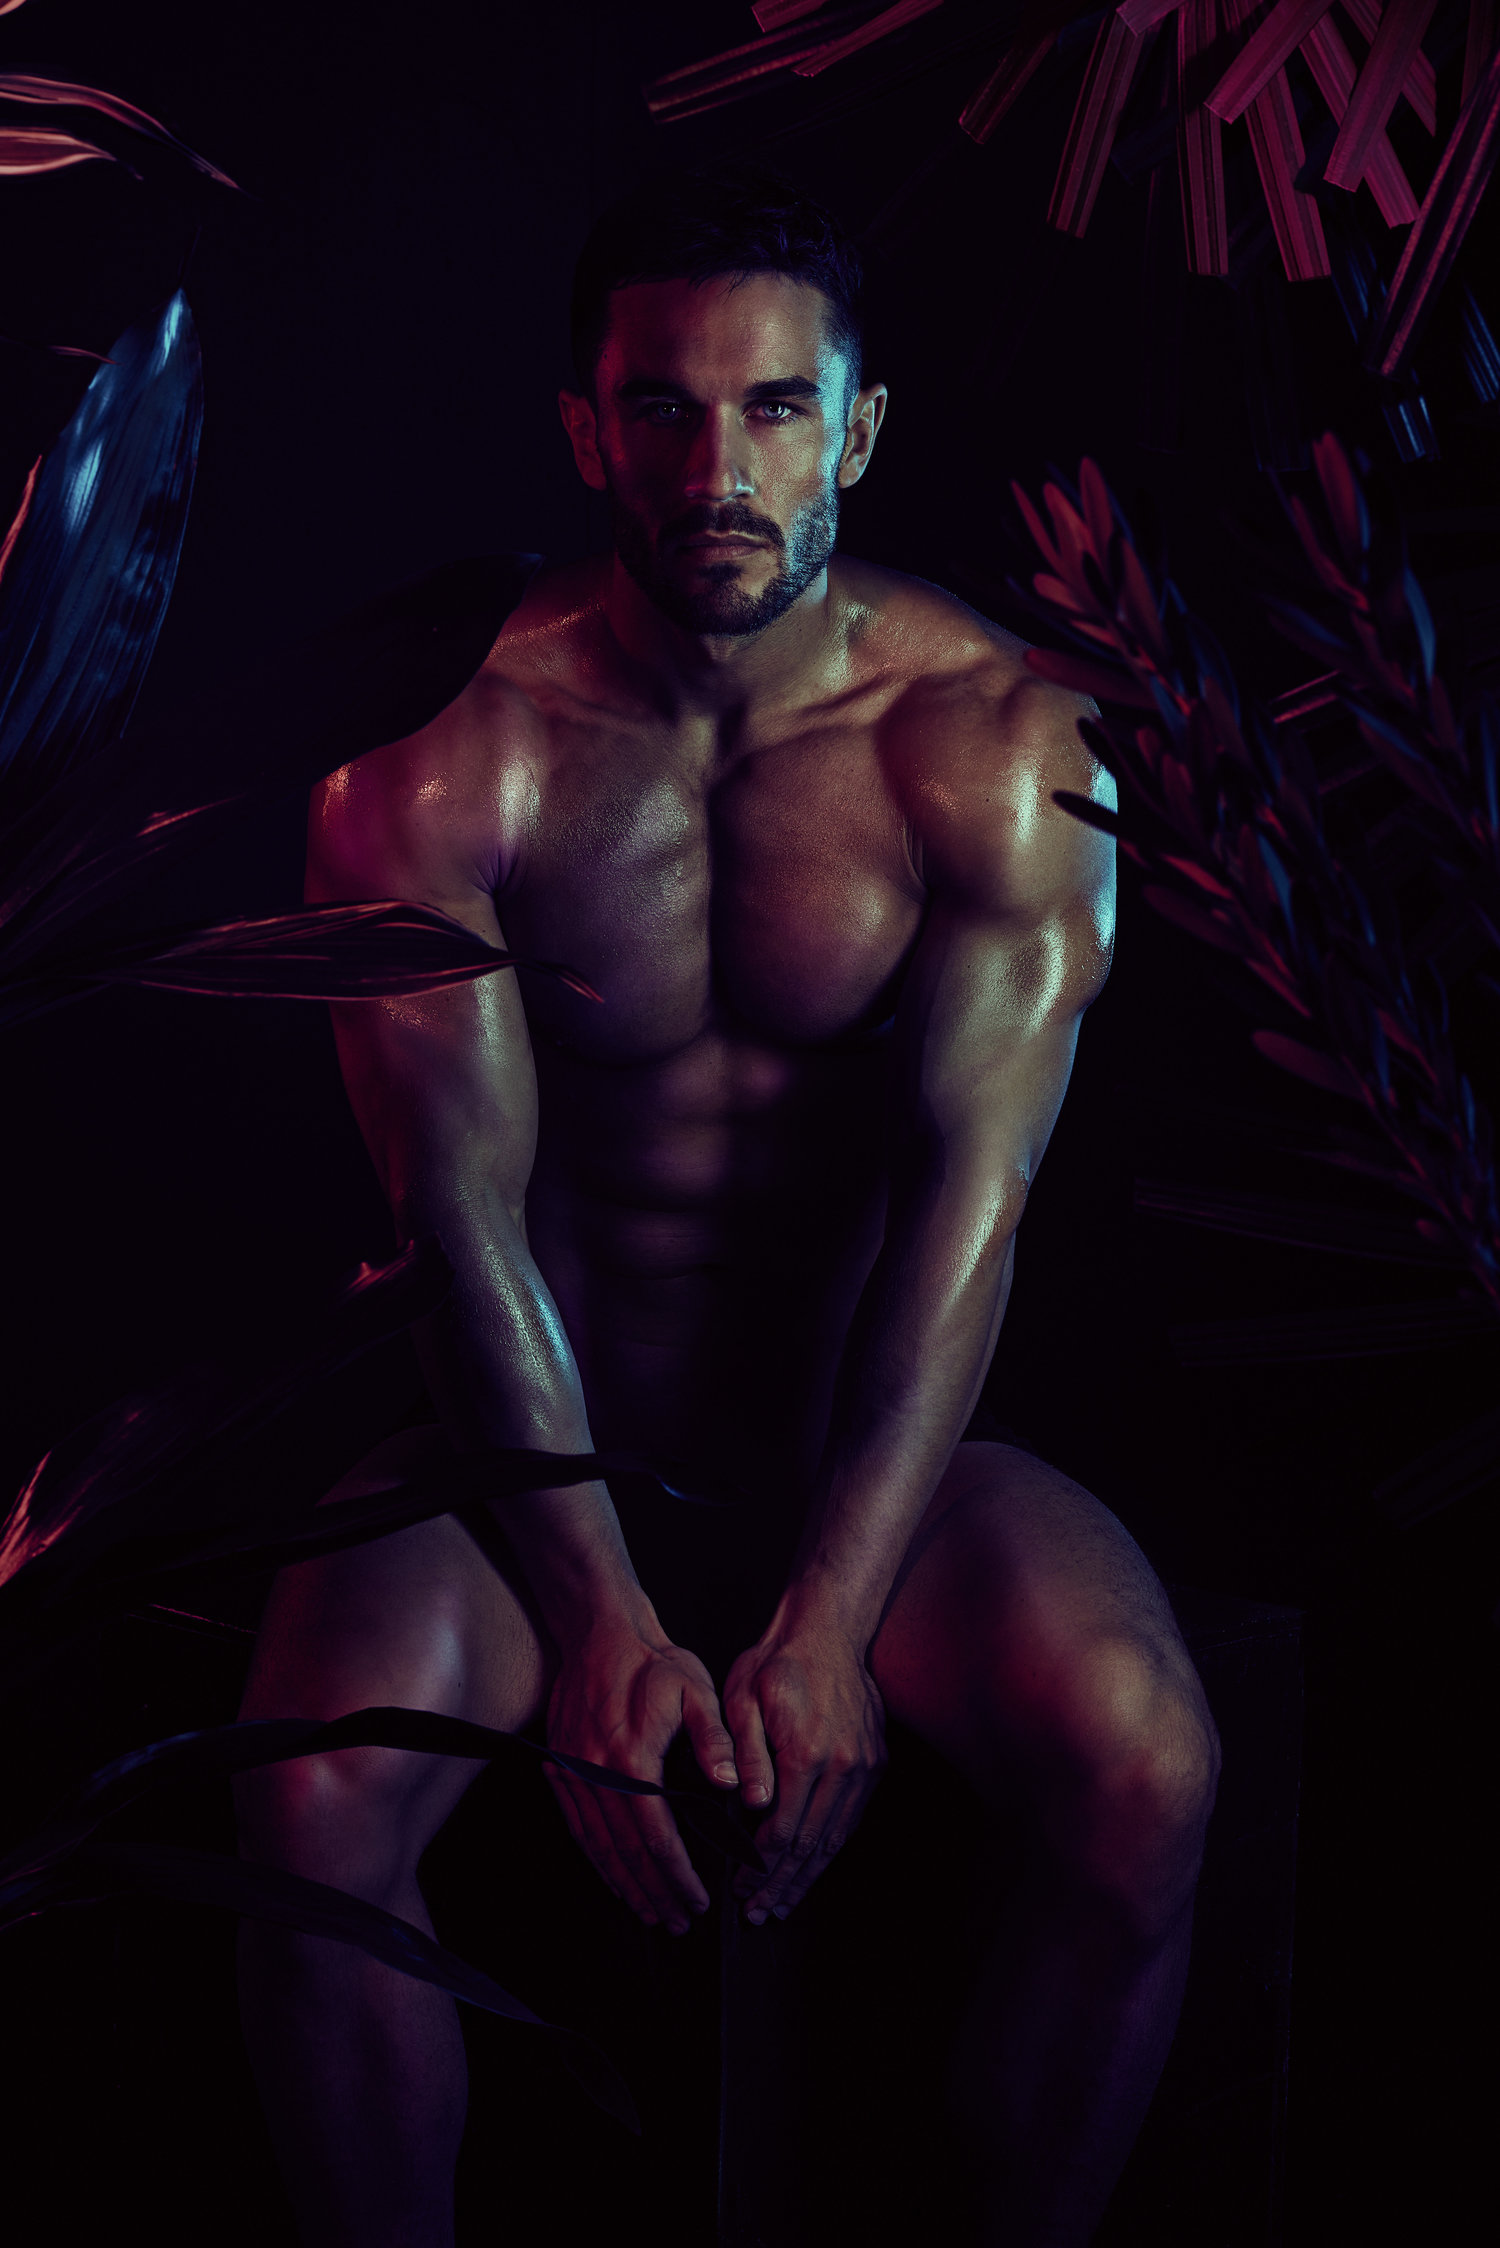 Adon Exclusive: Model Alex Cannon By Specular